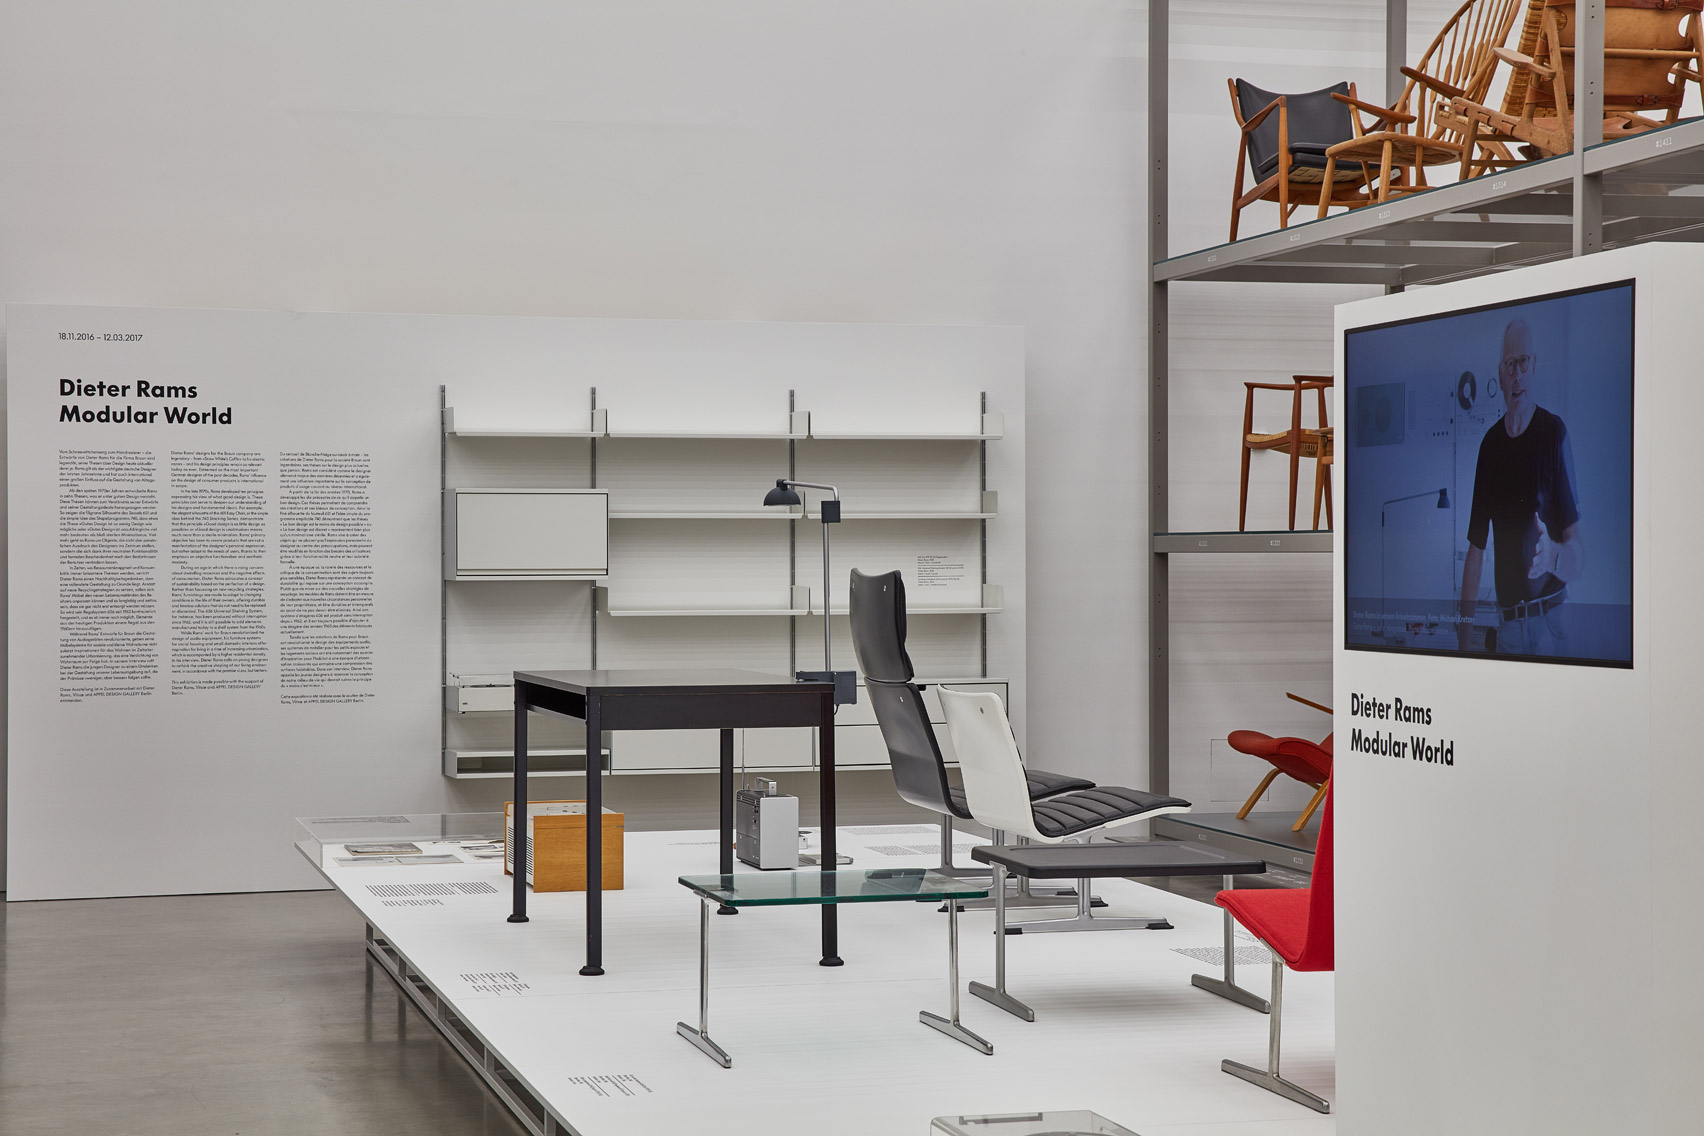 Dieter Rams' modular furniture showcased in Modular World exhibition at Vitra Campus